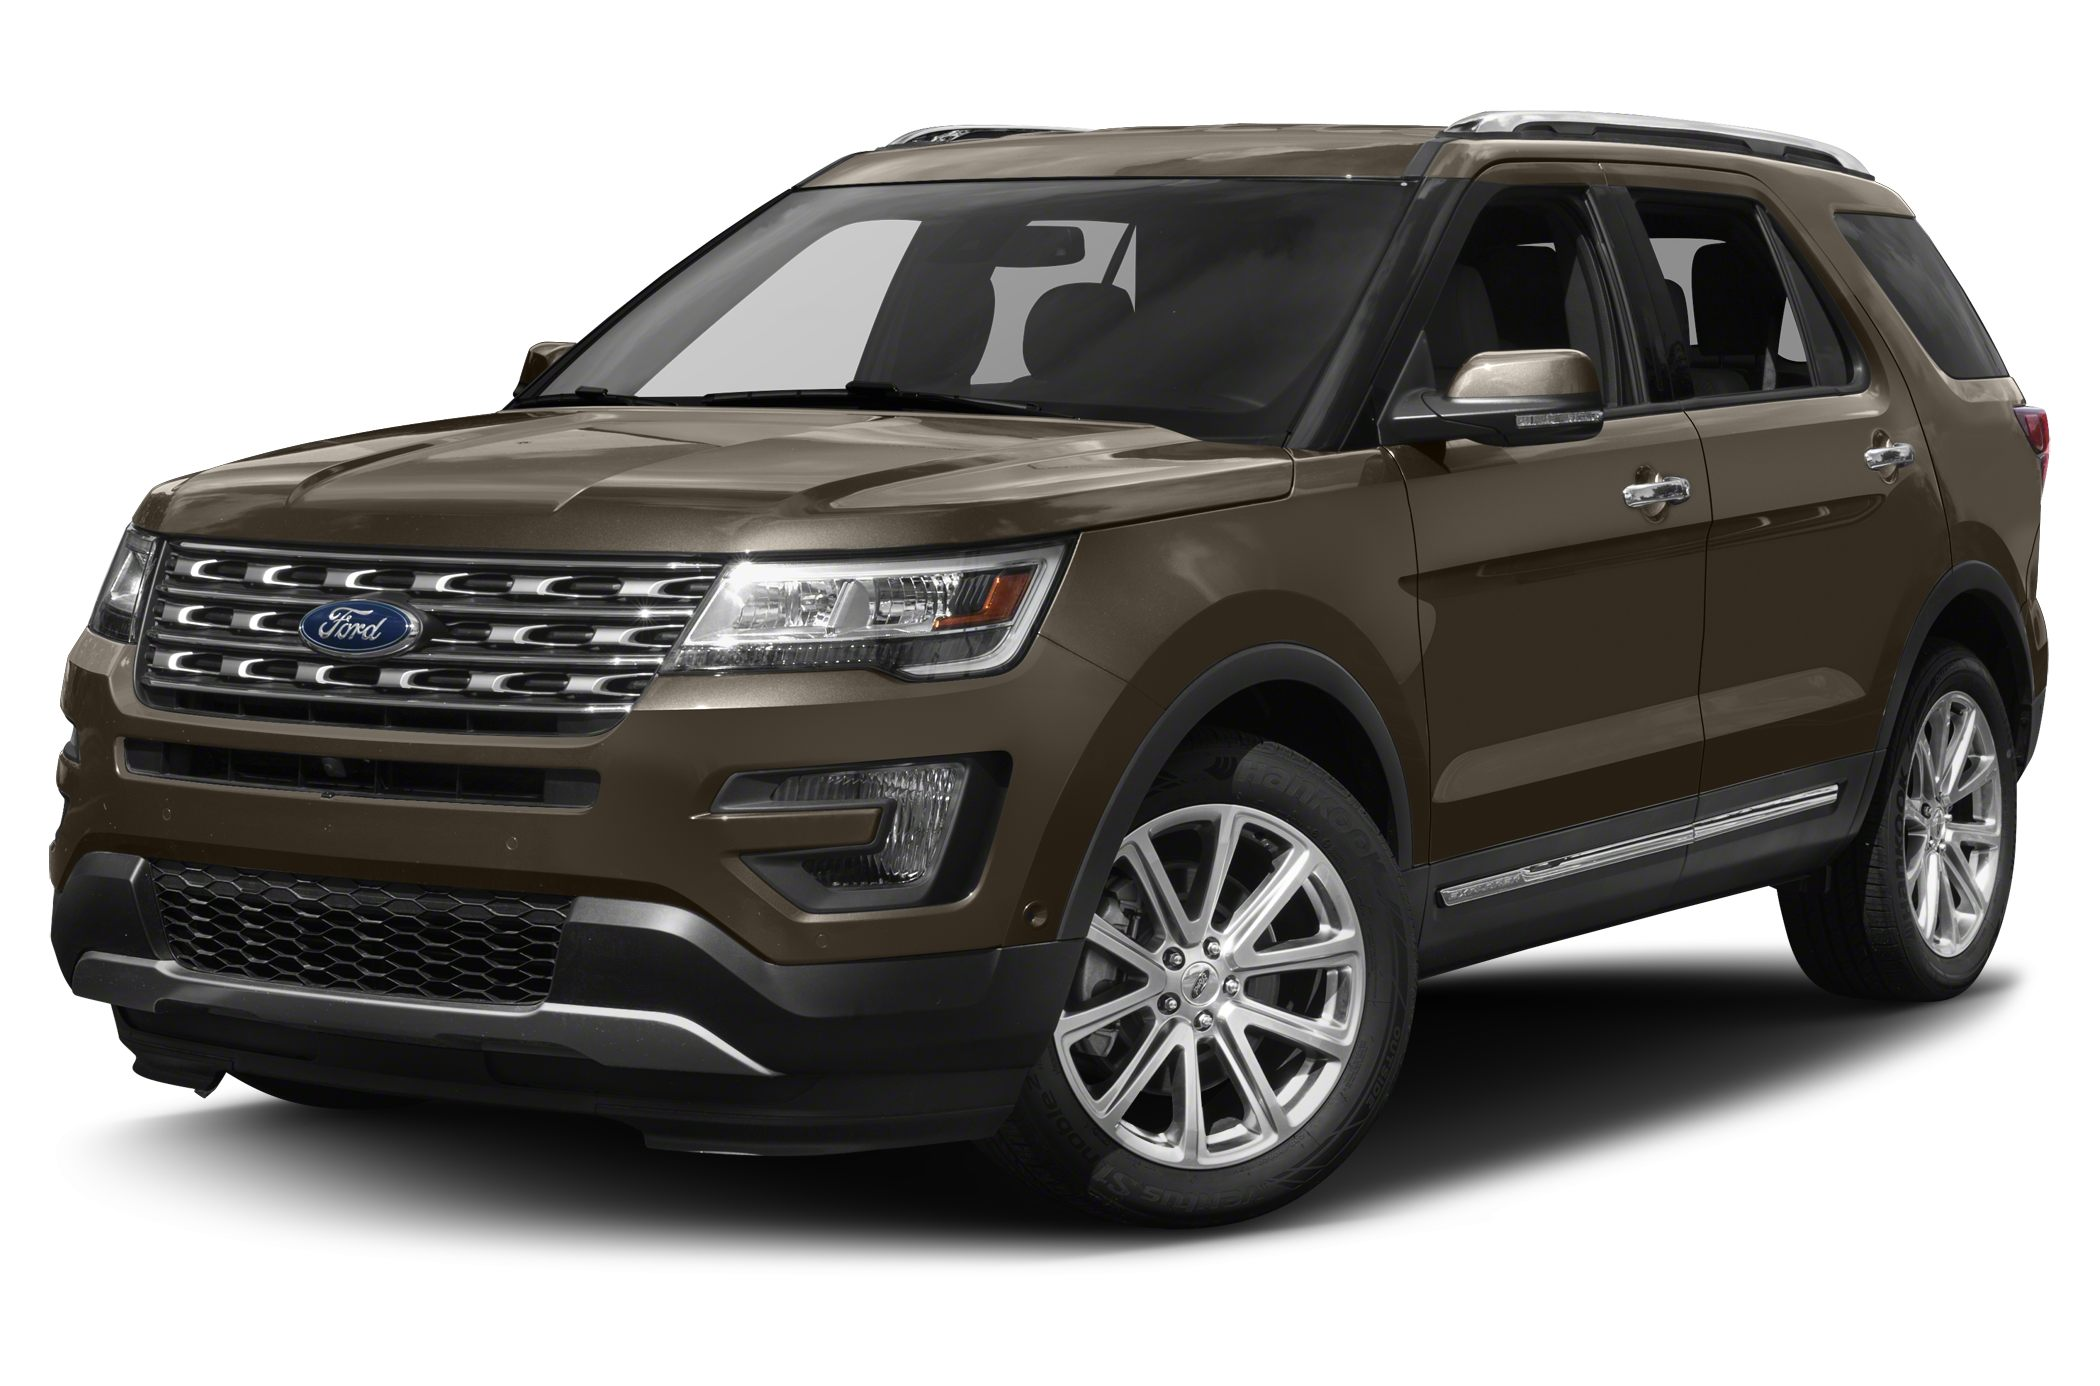 Limited 4dr 4x4 2017 Ford Explorer Photos